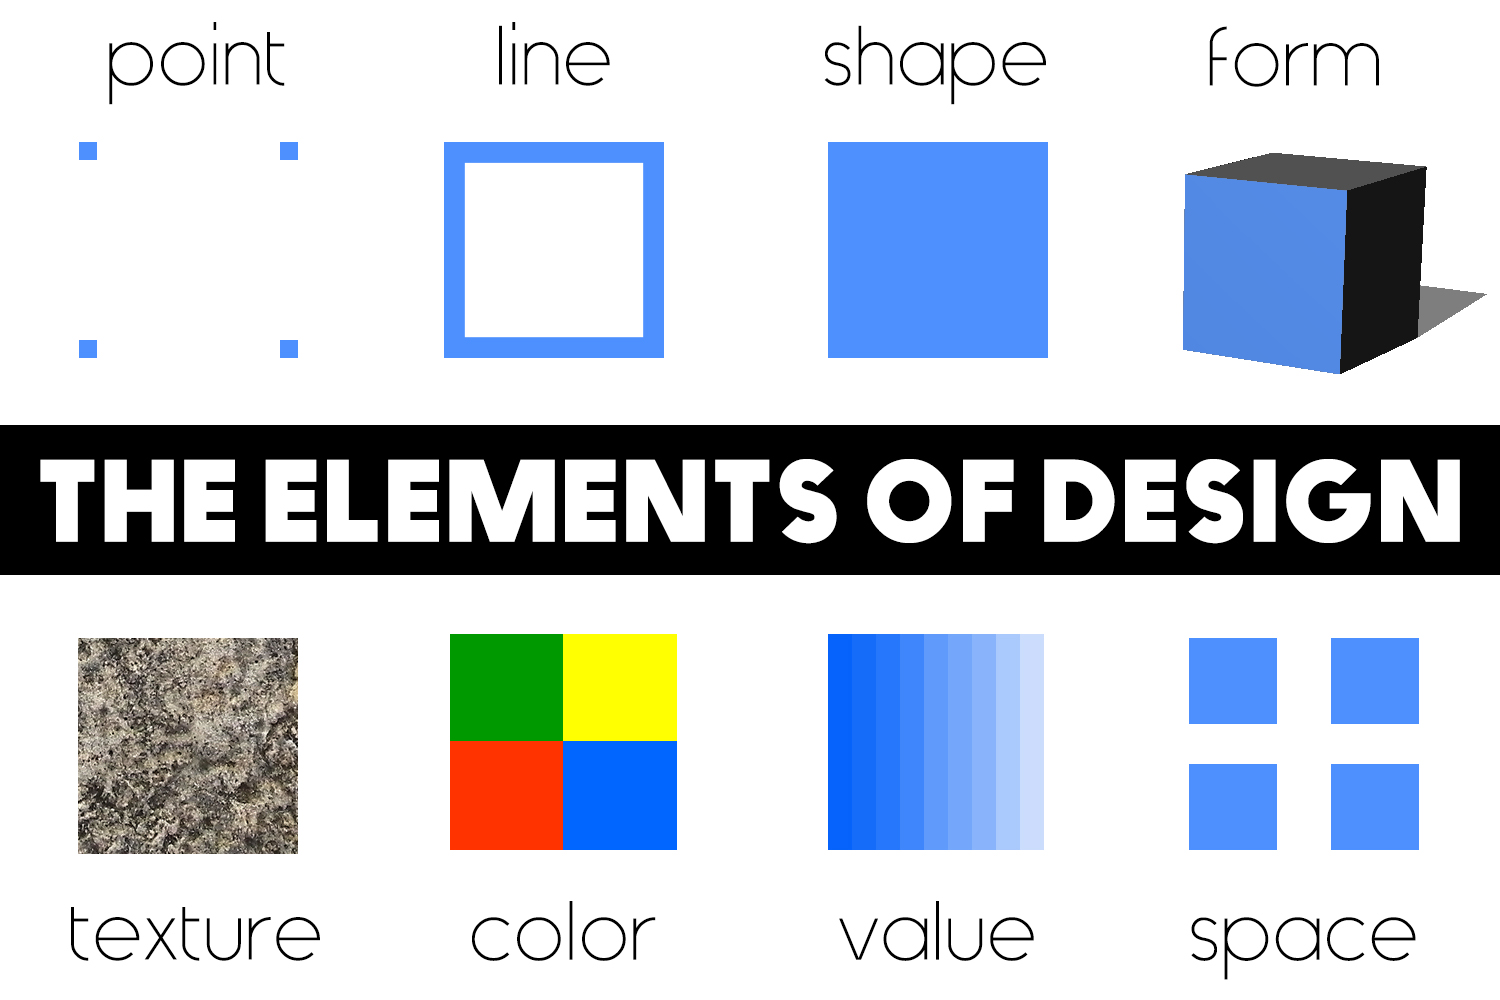 Elements Of Design Onlinedesignteacher,Tissue Box Plastic Canvas Designs